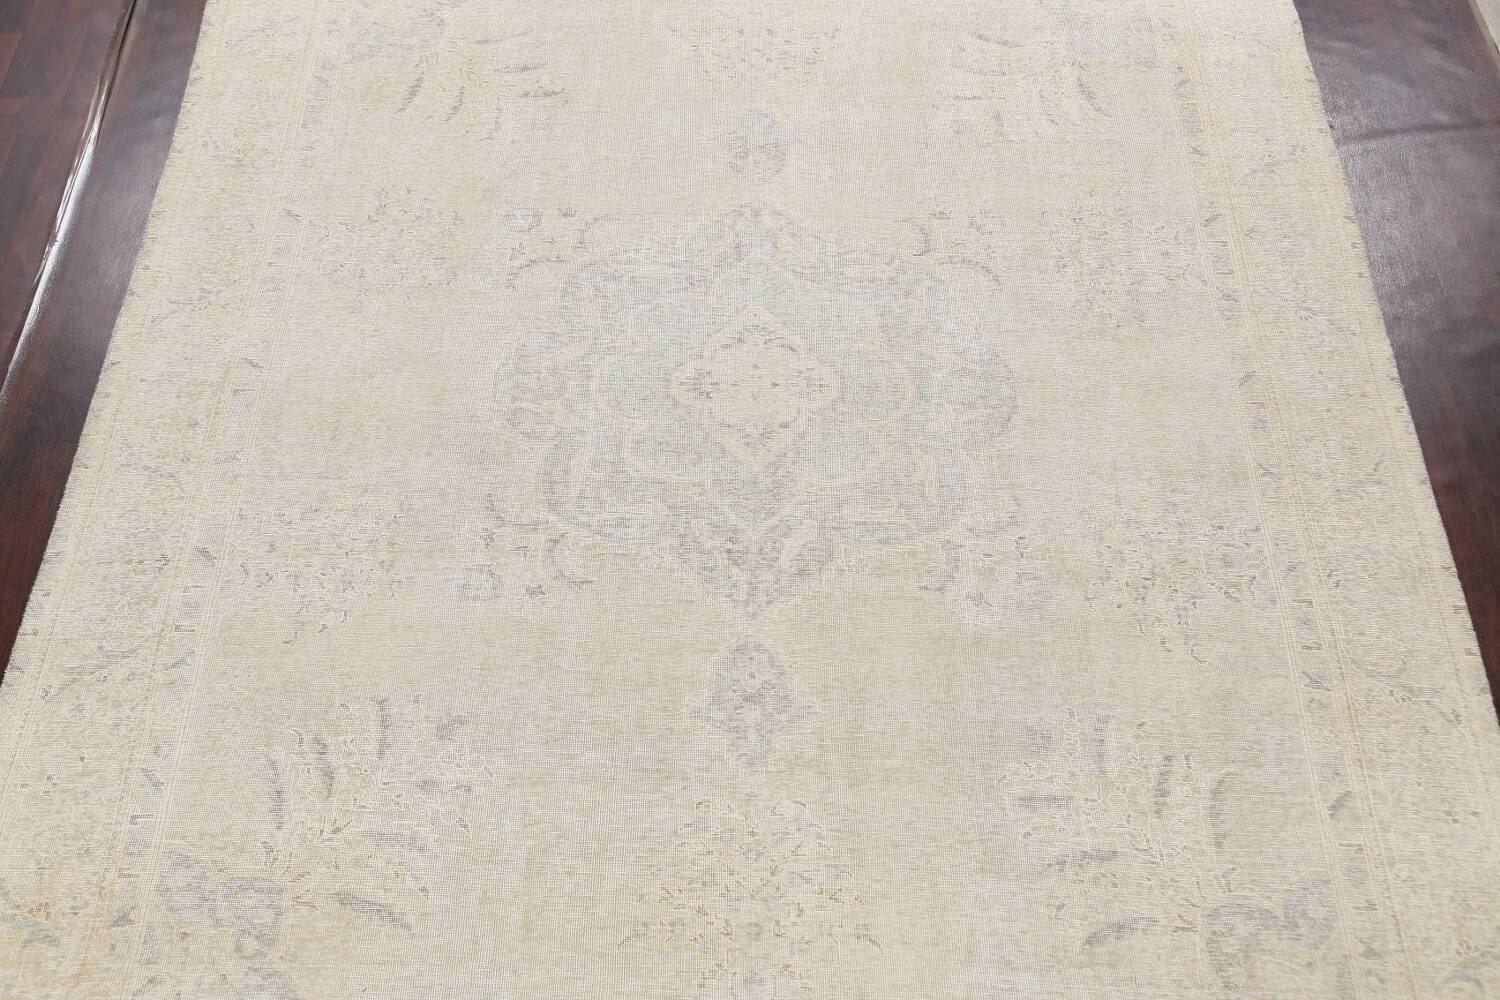 Antique Muted Distressed Tabriz Persian Area Rug 10x12 image 3